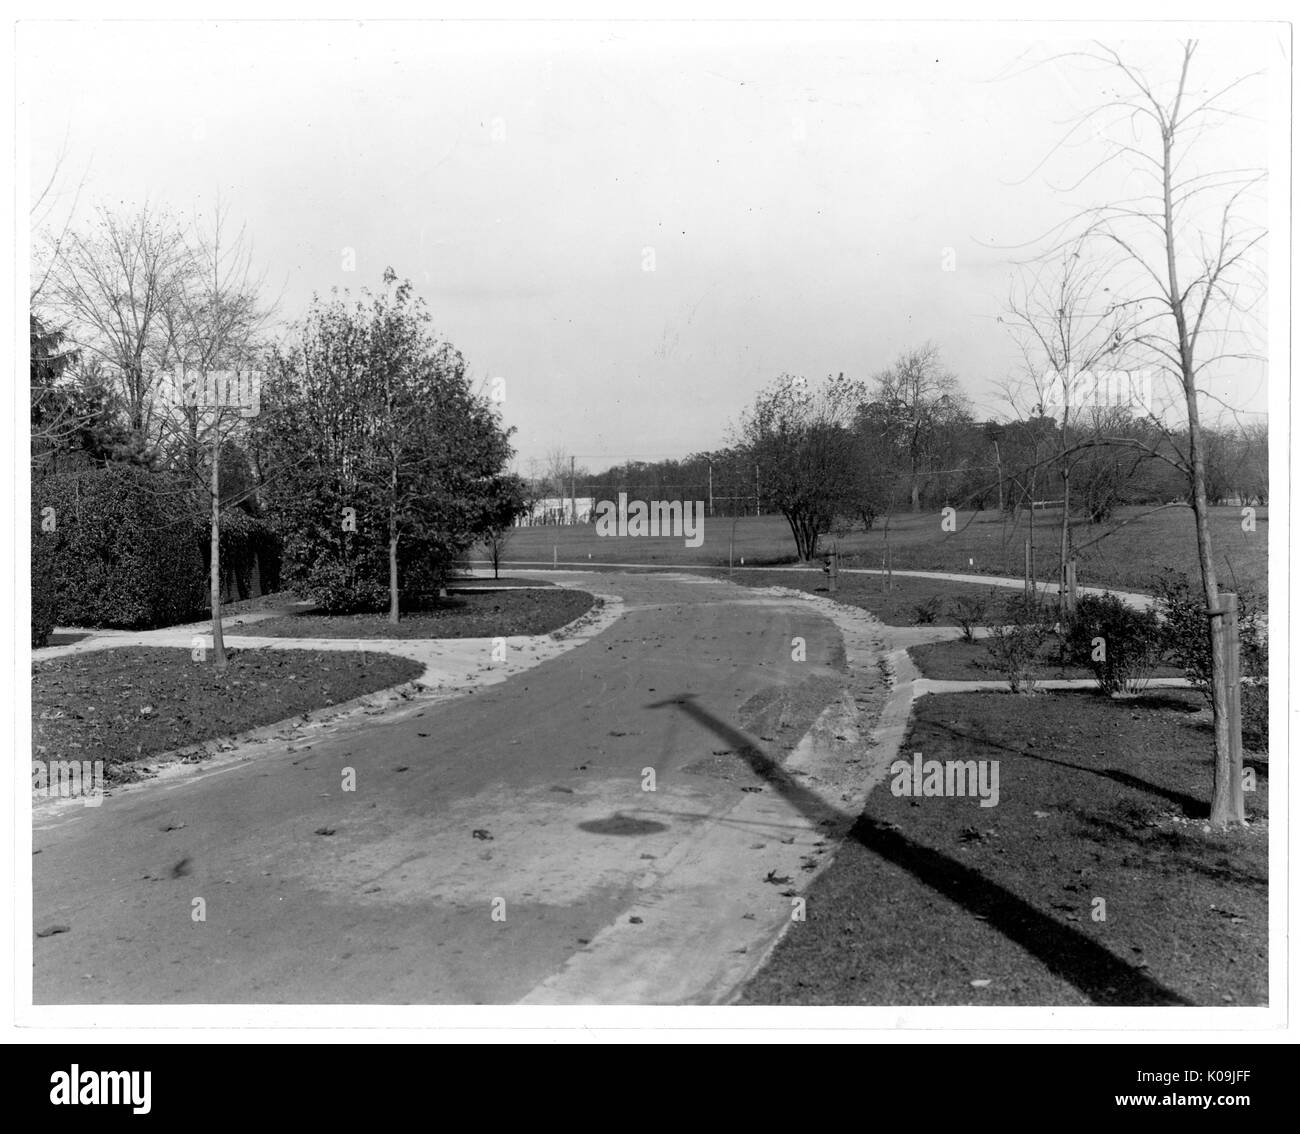 View of a curved and paved street near Guilford, trimmed grass lines borders the street as well as some trees, Baltimore, Maryland, 1910. This image is from a series documenting the construction and sale of homes in the Roland Park/Guilford neighborhood of Baltimore, a streetcar suburb and one of the first planned communities in the United States. The neighborhood was segregated, and is considered an early example of the enforcement of racial segregation through the use of restricted covenants. - Stock Image